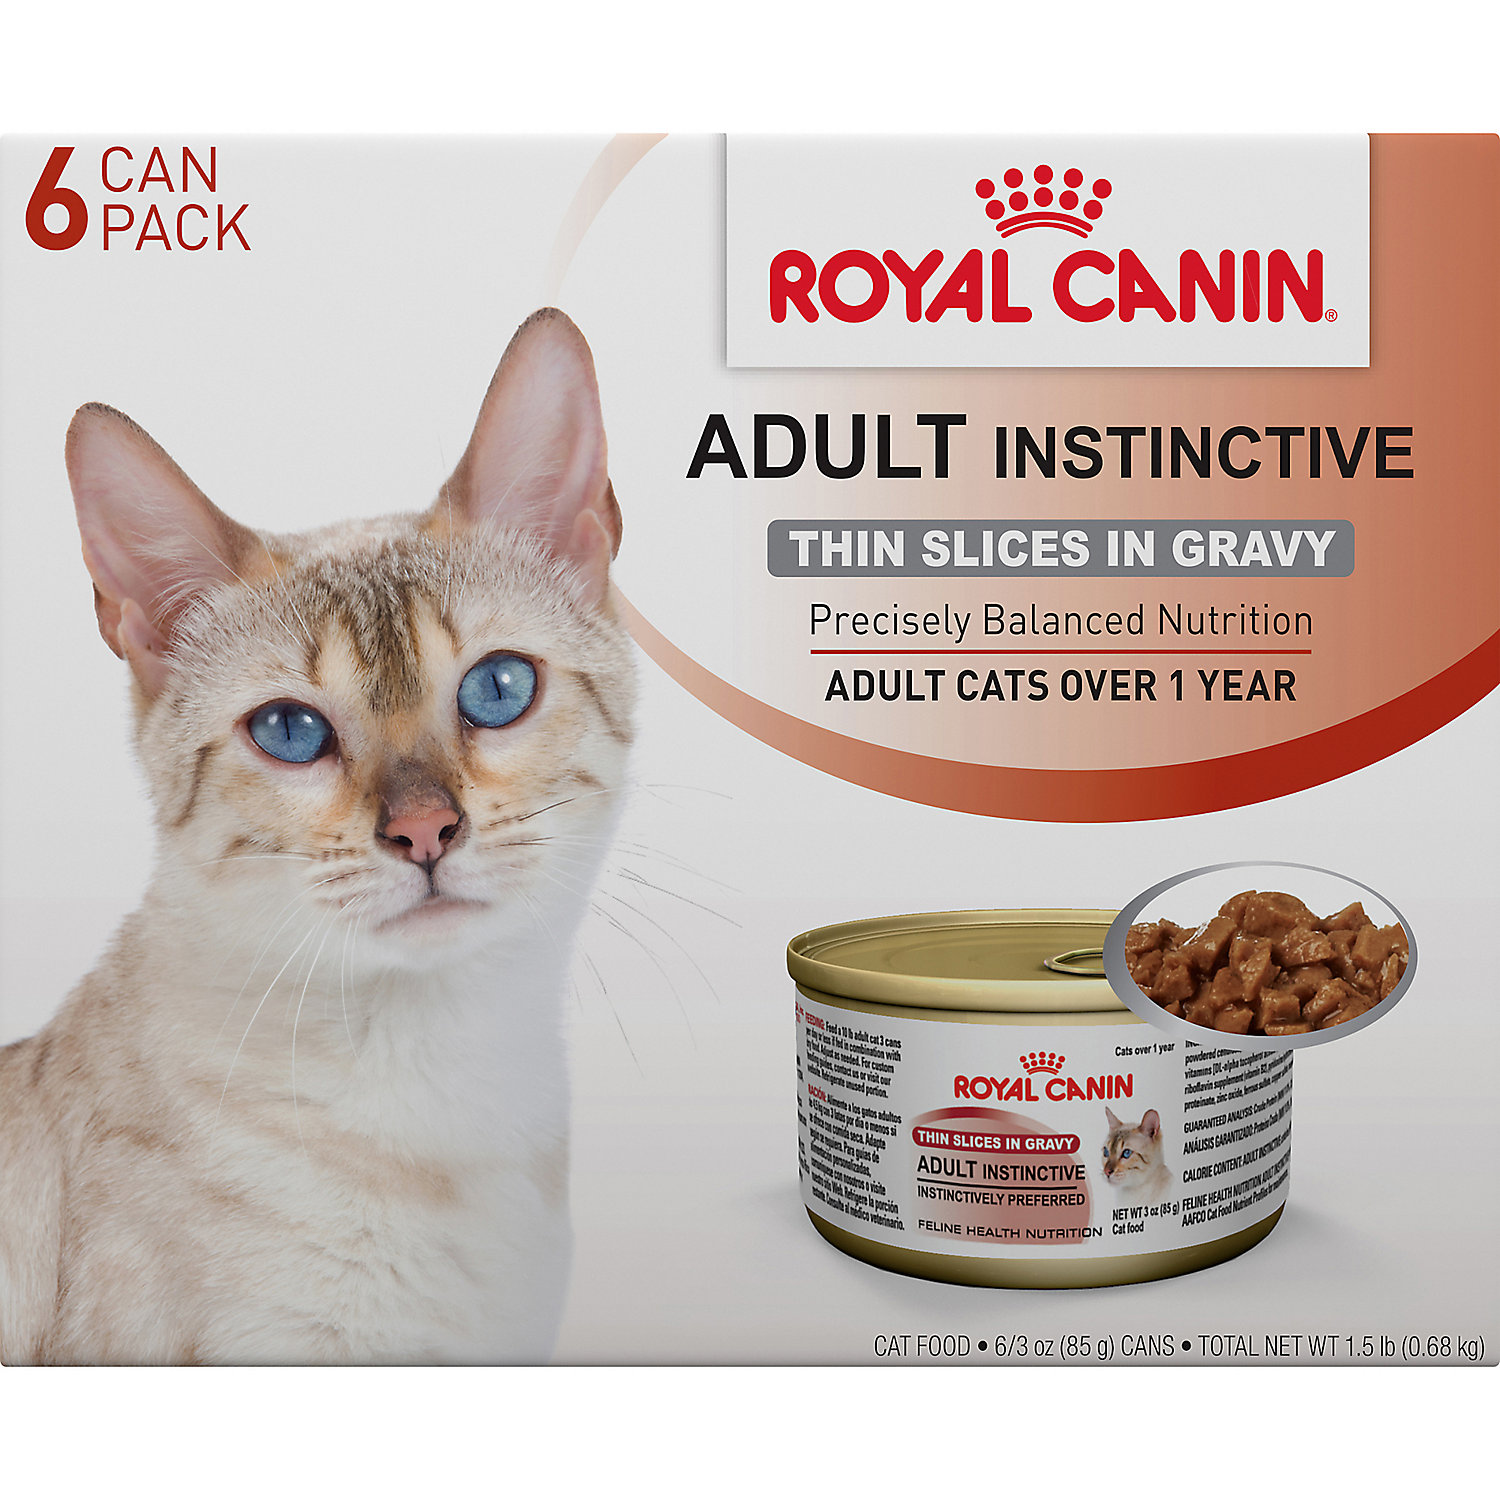 Royal Canin Canned Upc Amp Barcode Upcitemdb Com